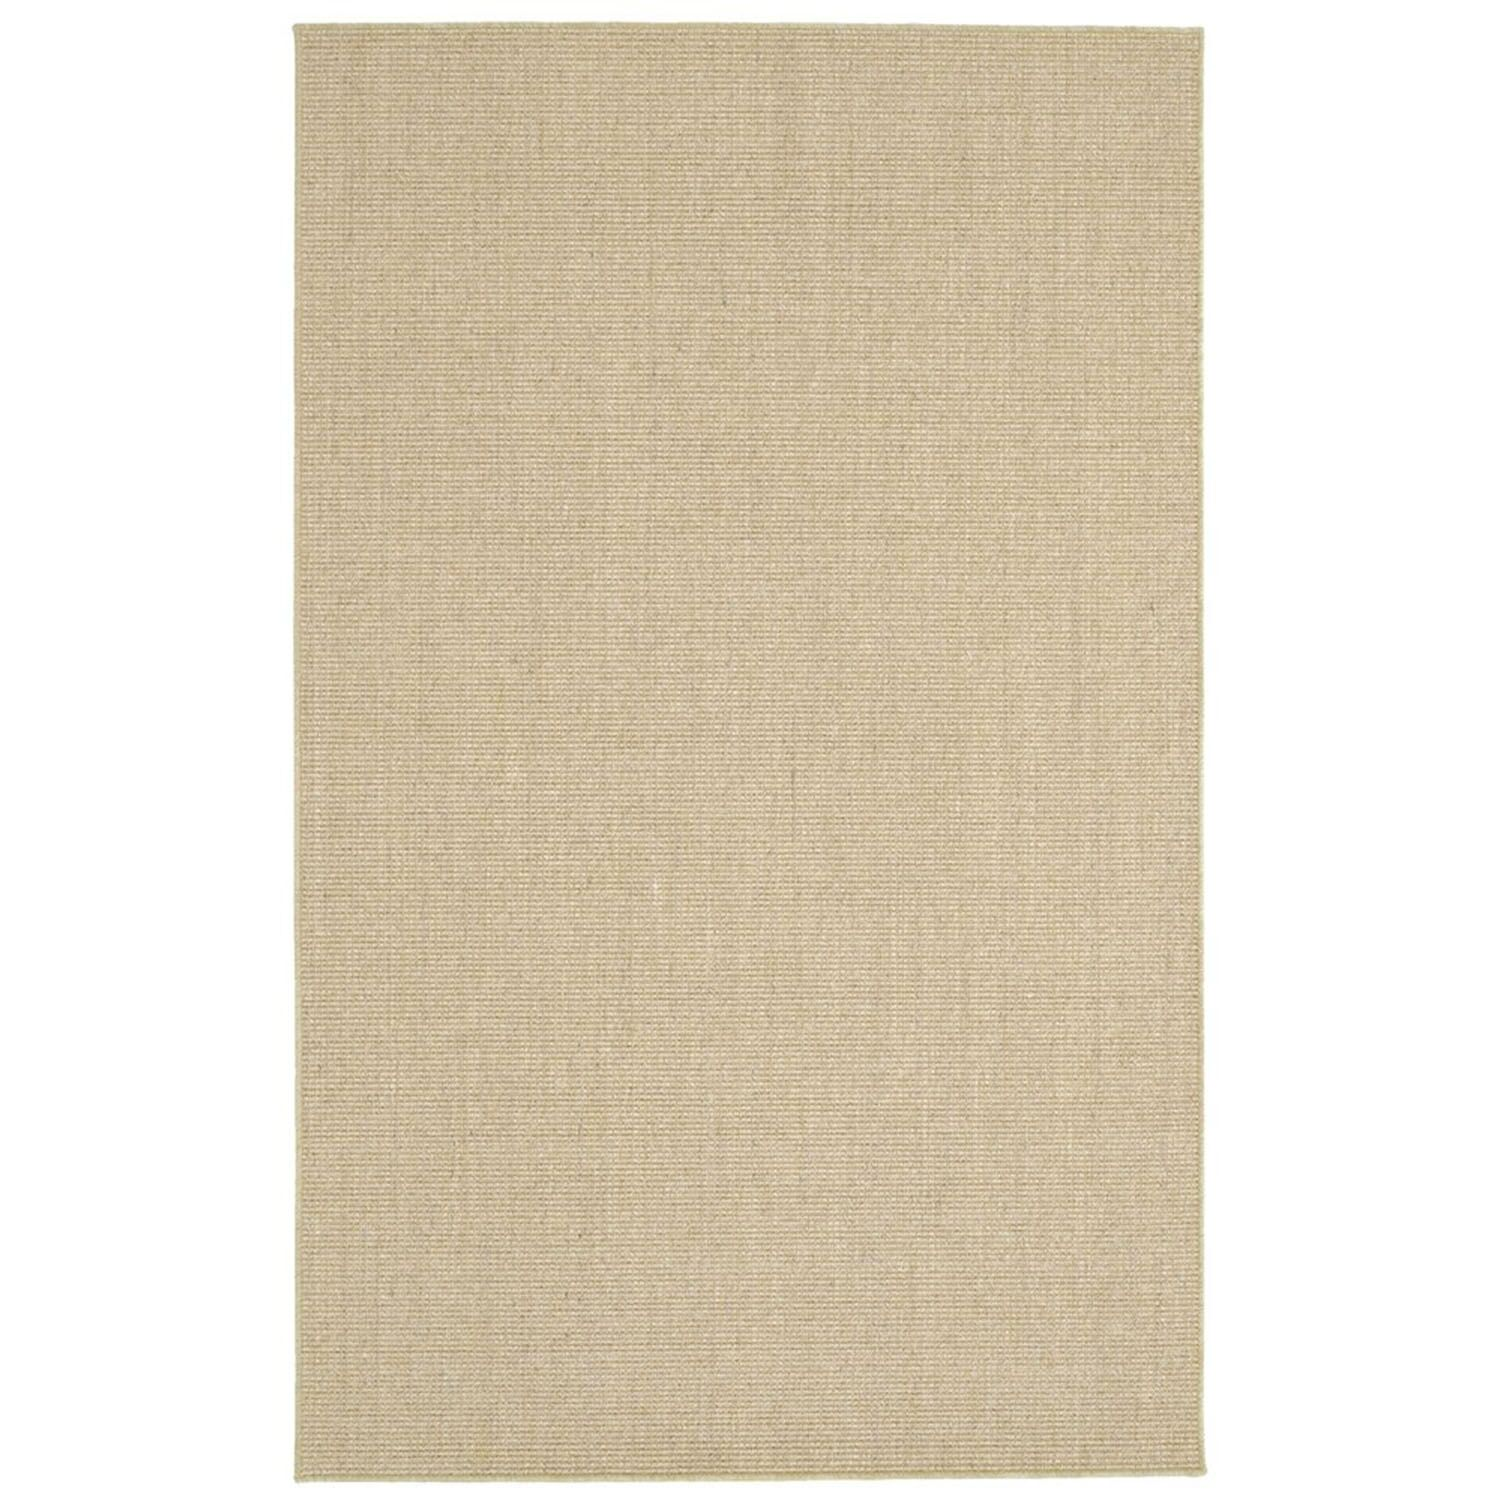 Paton Heather Area Rug Rug Size: 9' x 12'